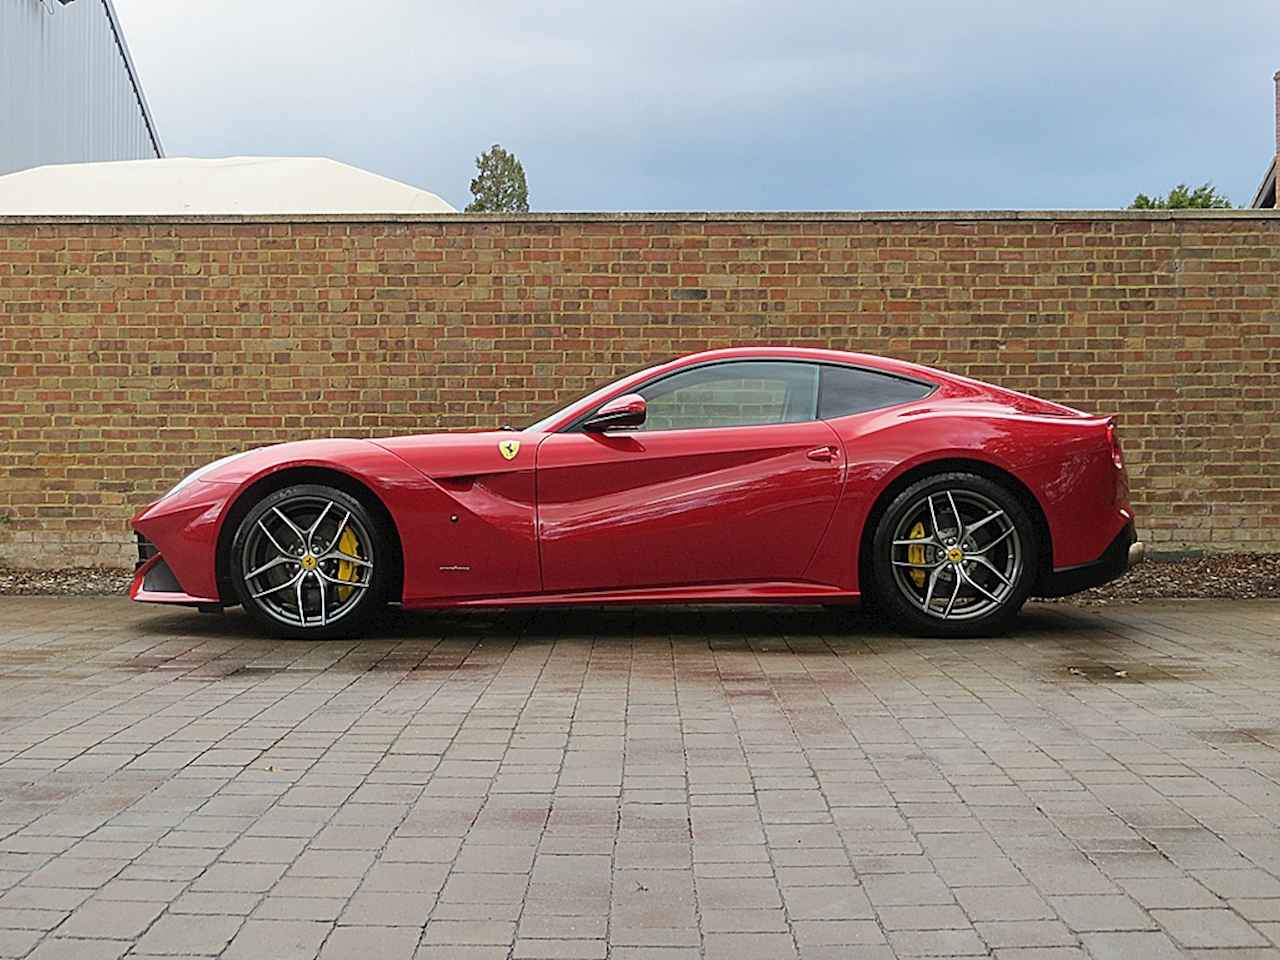 2013 used ferrari f12berlinetta